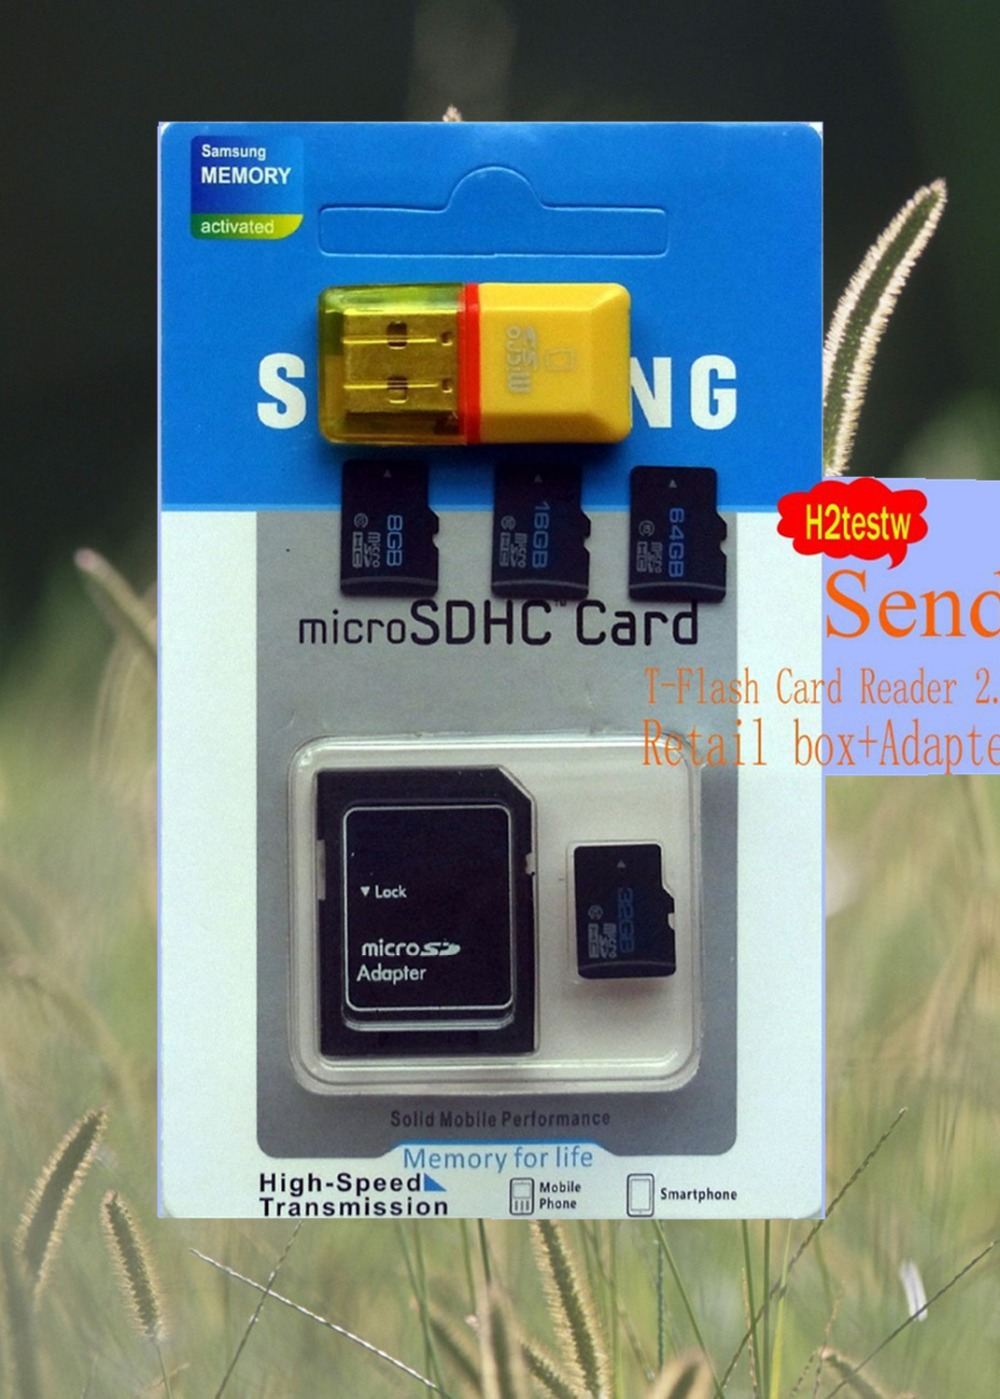 10/lot Micro SD card Class10 4GB 8GB 16GB 32GB 64GB TF card Memory Card cell phone card adapter+reader blister kits for samsung(China (Mainland))